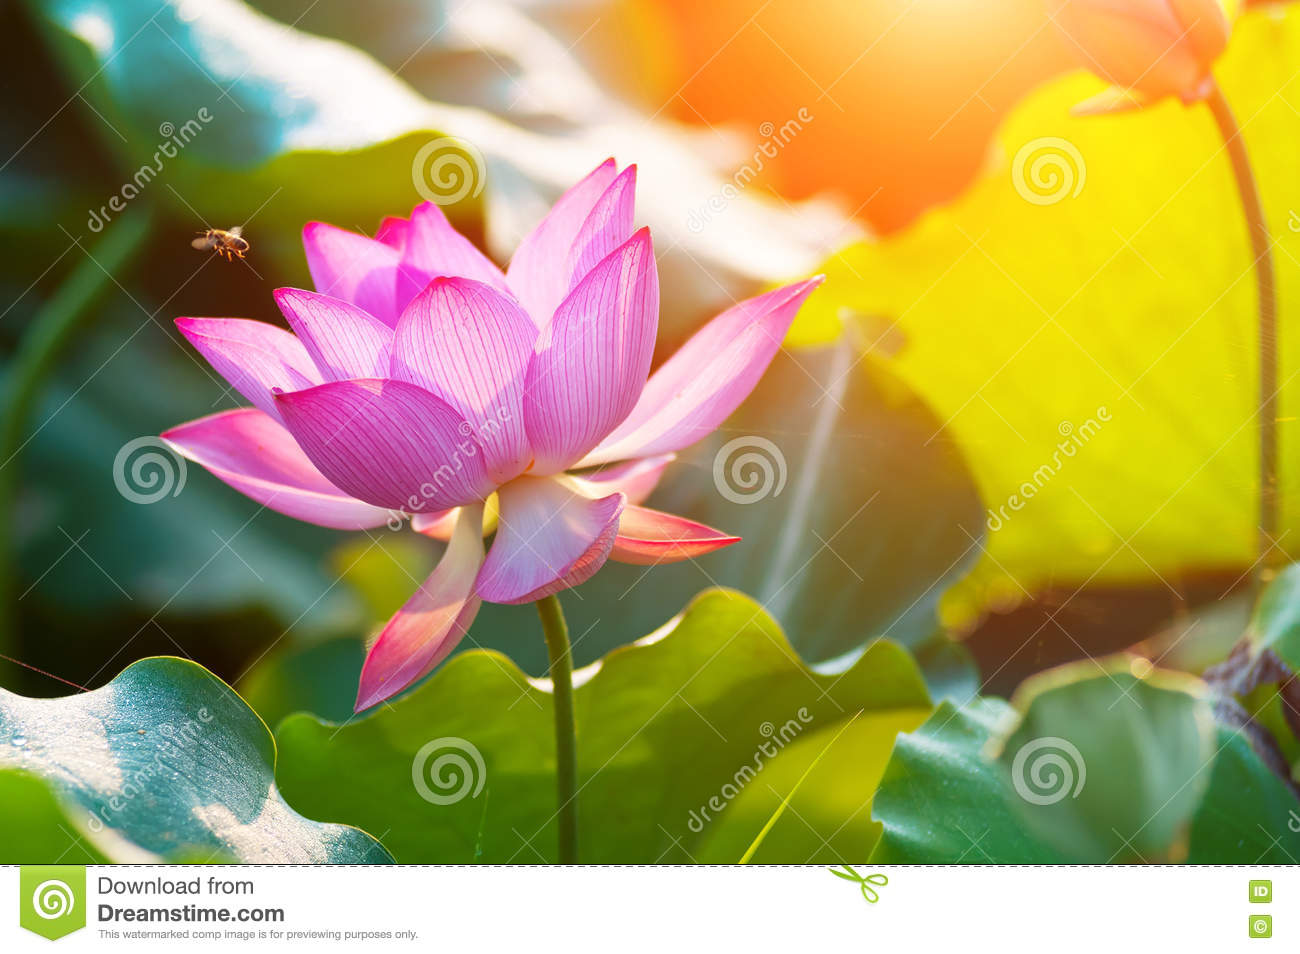 Lotus Flower Blossom In Summer Stock Photo Image Of Leaf Green